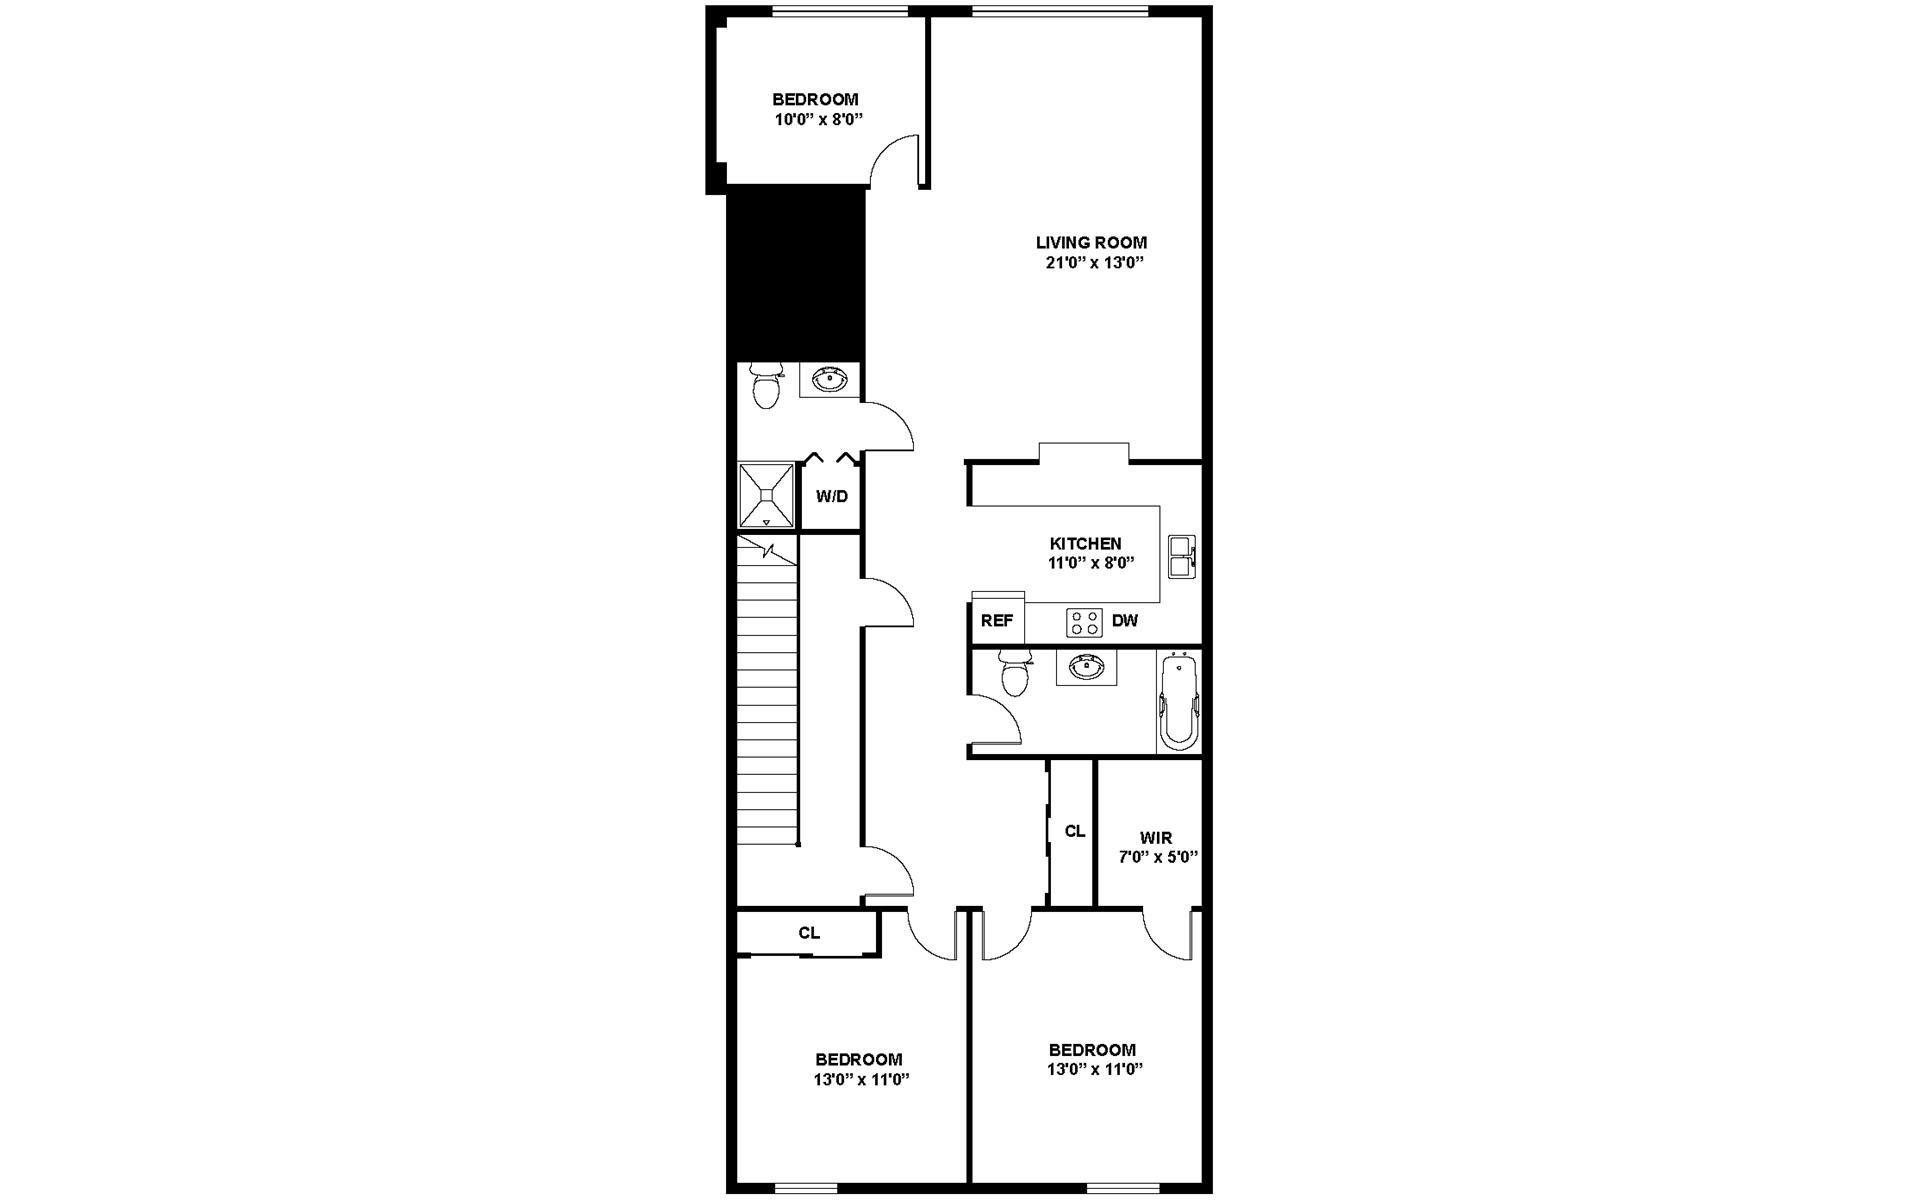 Floor plan of 32 Orchard St - Lower East Side, New York